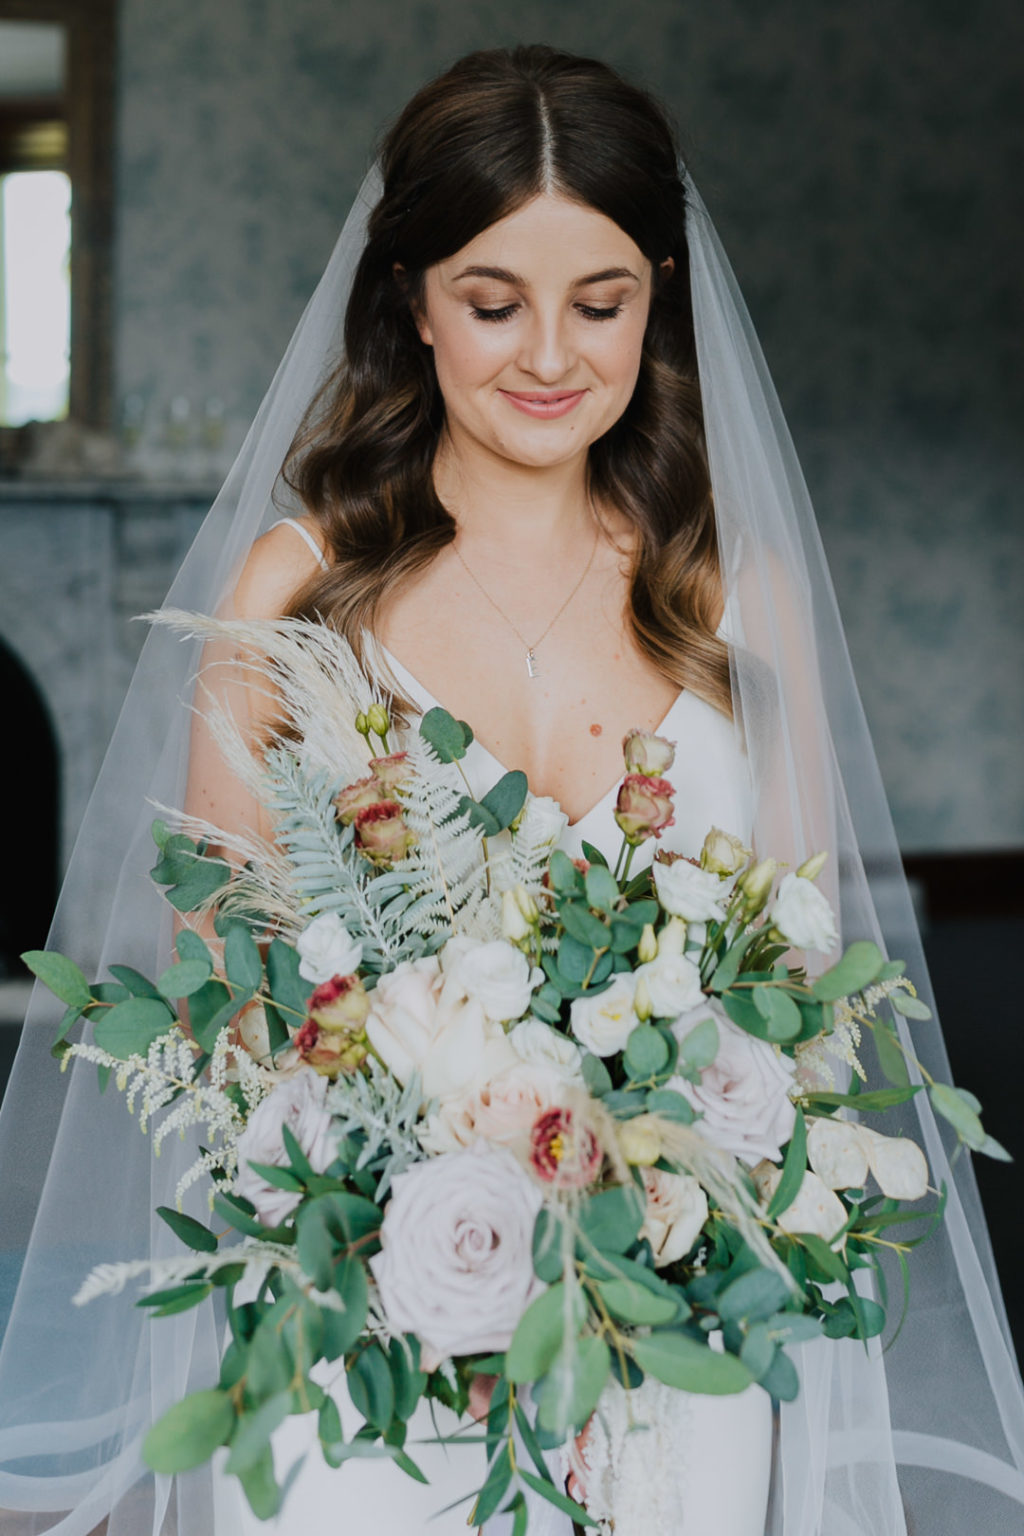 The wedding bouquet was done with pastel and white blooms and much greenery